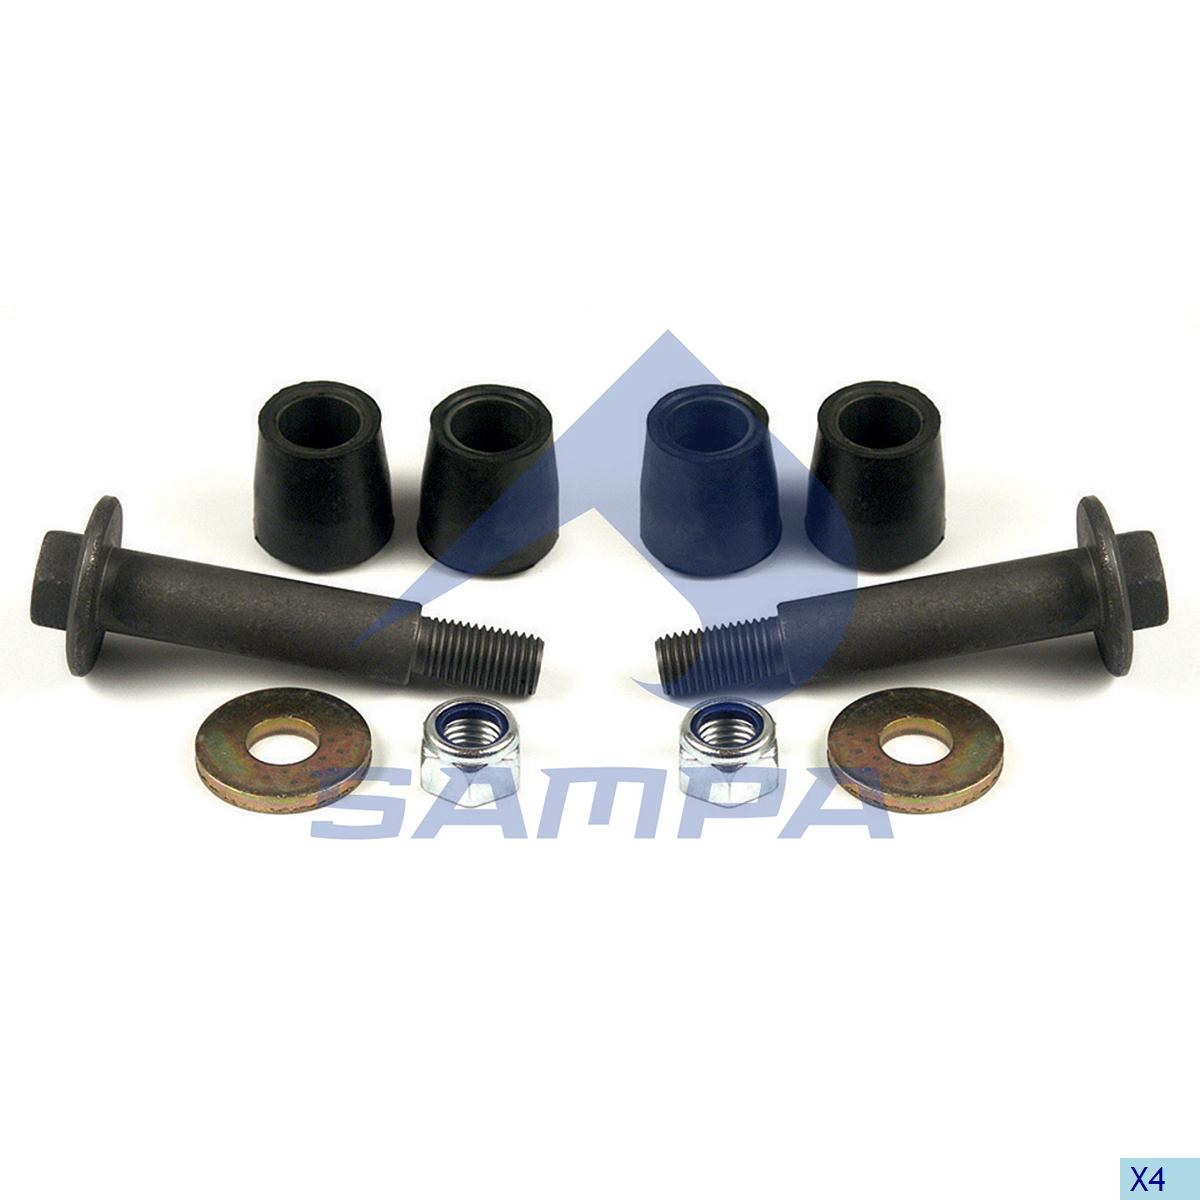 Repair Kit, Spring, Ror-Meritor, Suspension